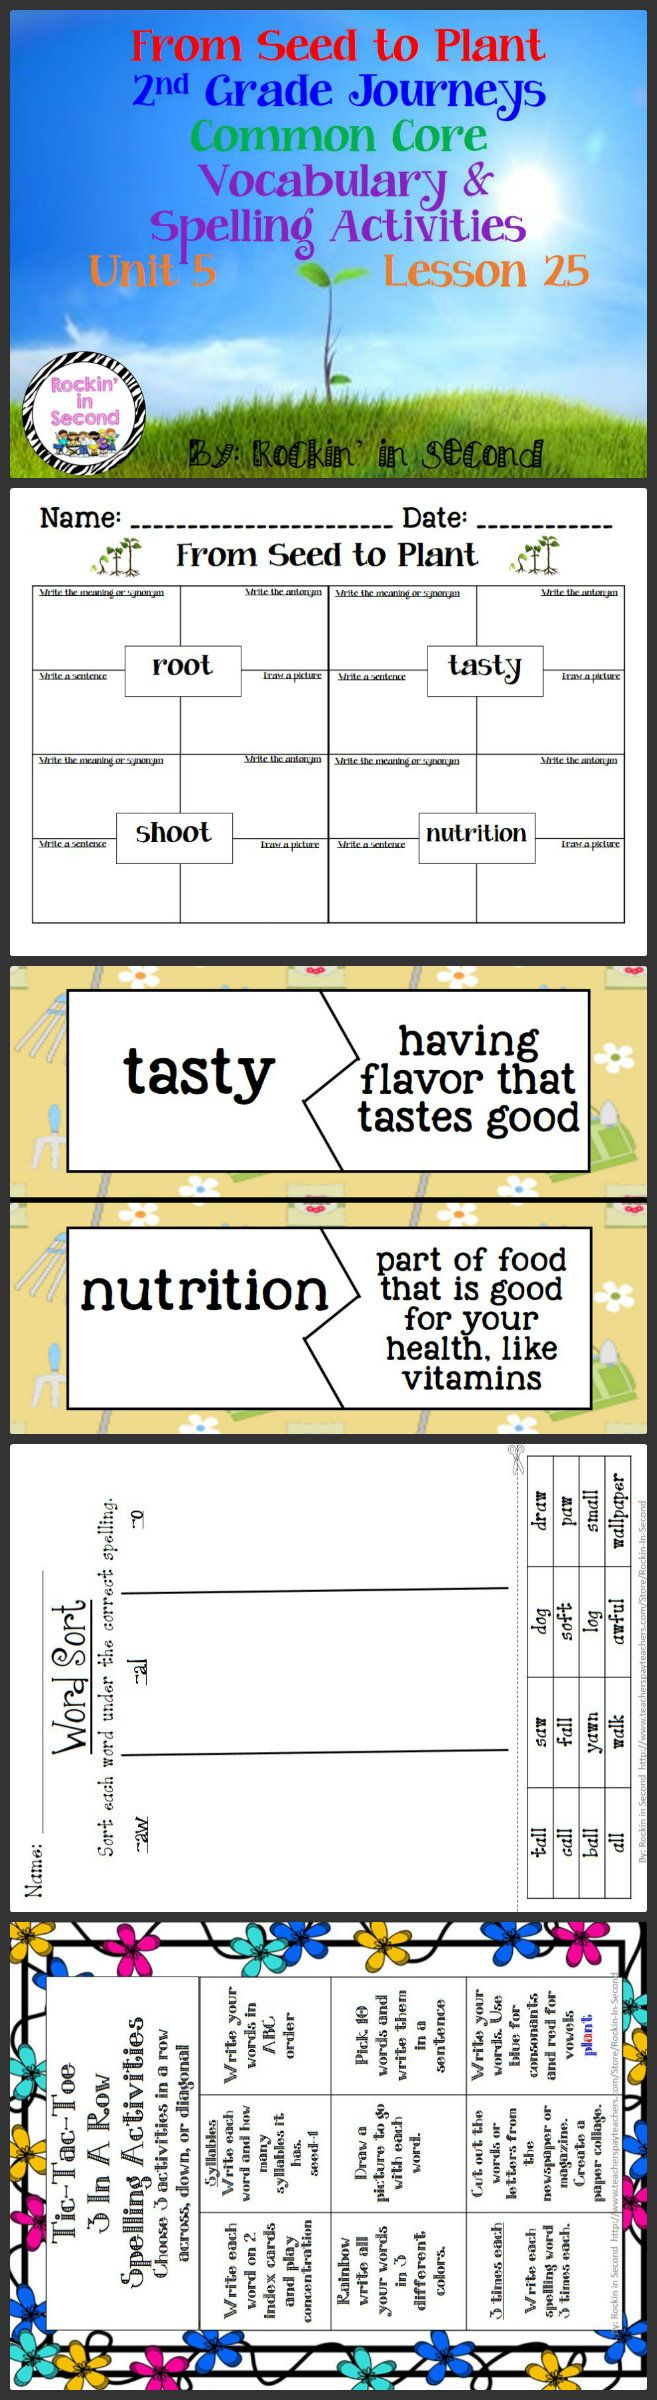 Journeys From Seed to Plant Lesson 25 Spelling & Vocab. Activities  In this bundle you will receive Vocabulary Puzzles, Vocabulary 4 square sheets, Spelling lists for student's agendas, Tic-Tac-Toe spelling activity, Spelling Sort, and Rainbow Write spelling paper.  These all are aligned with Common Core and goes along with Journeys.